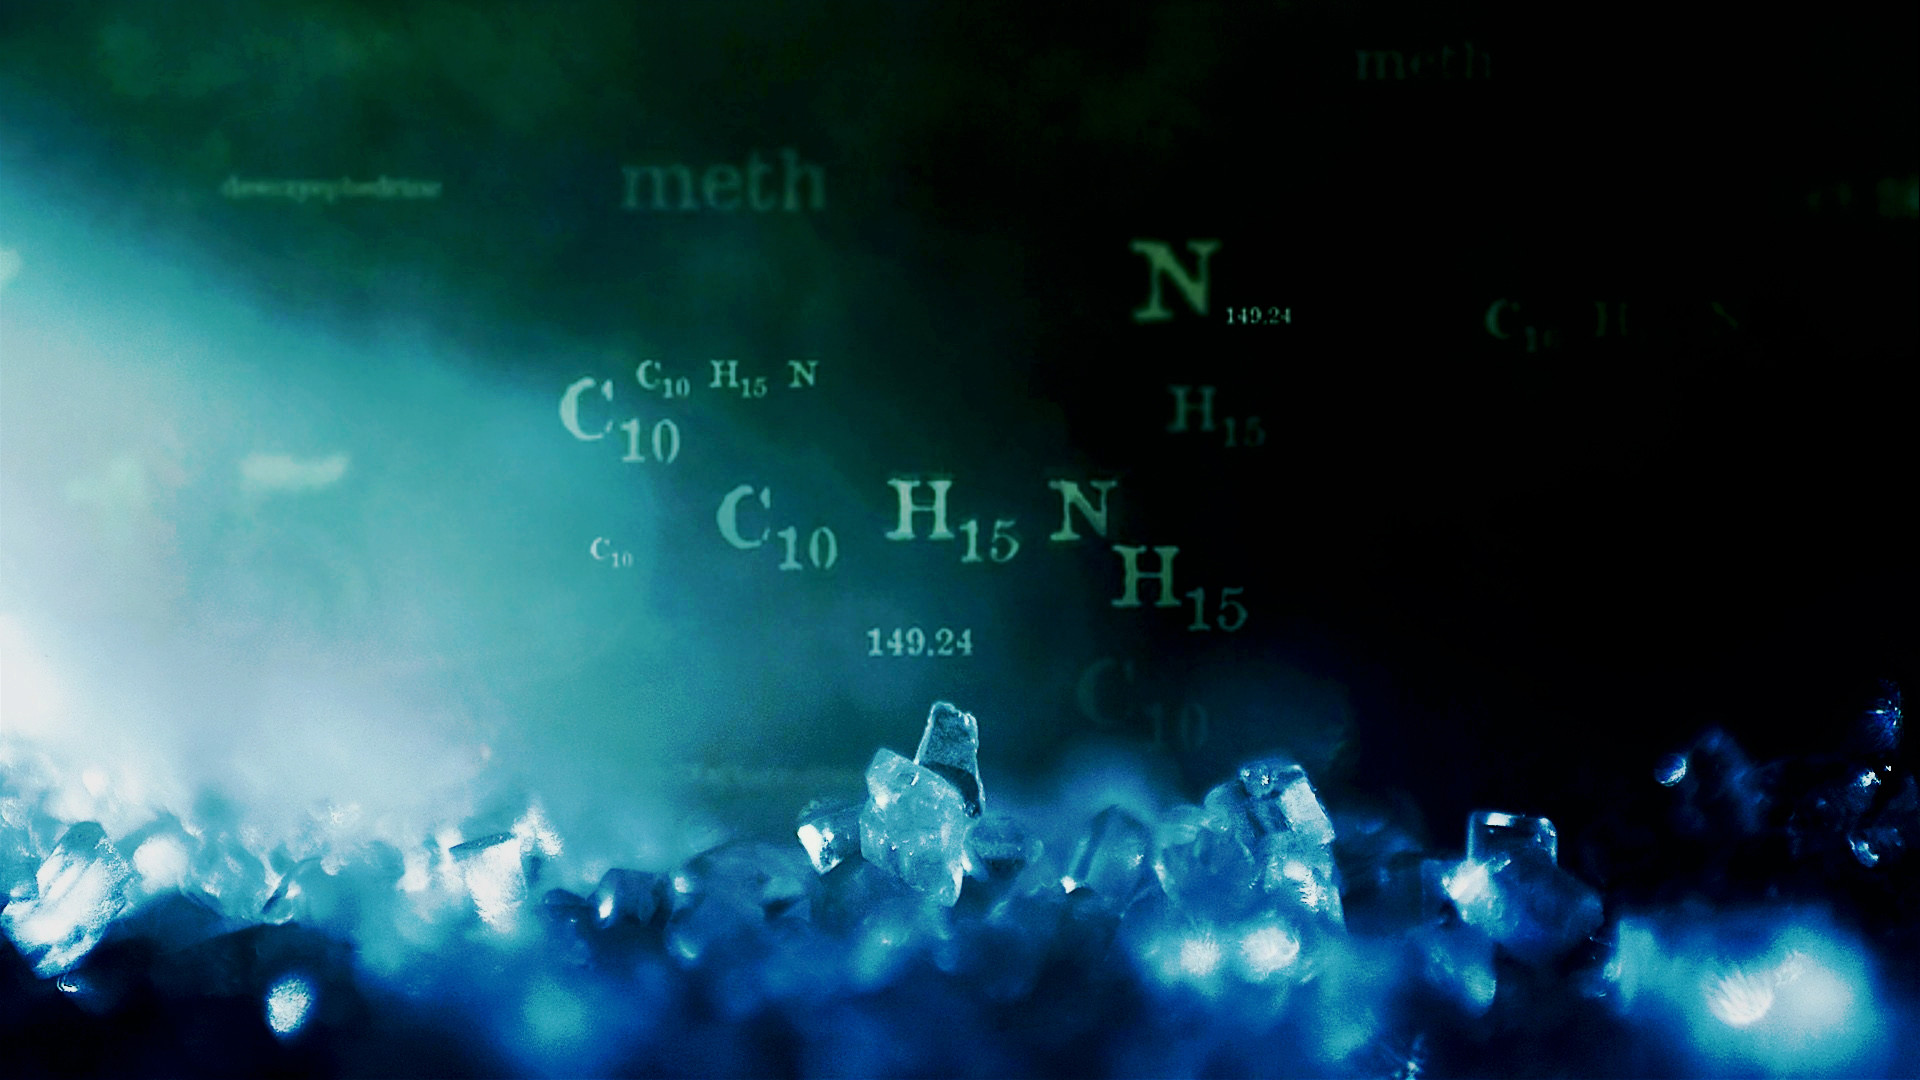 Crystal Meth Wallpaper - WallpaperSafari